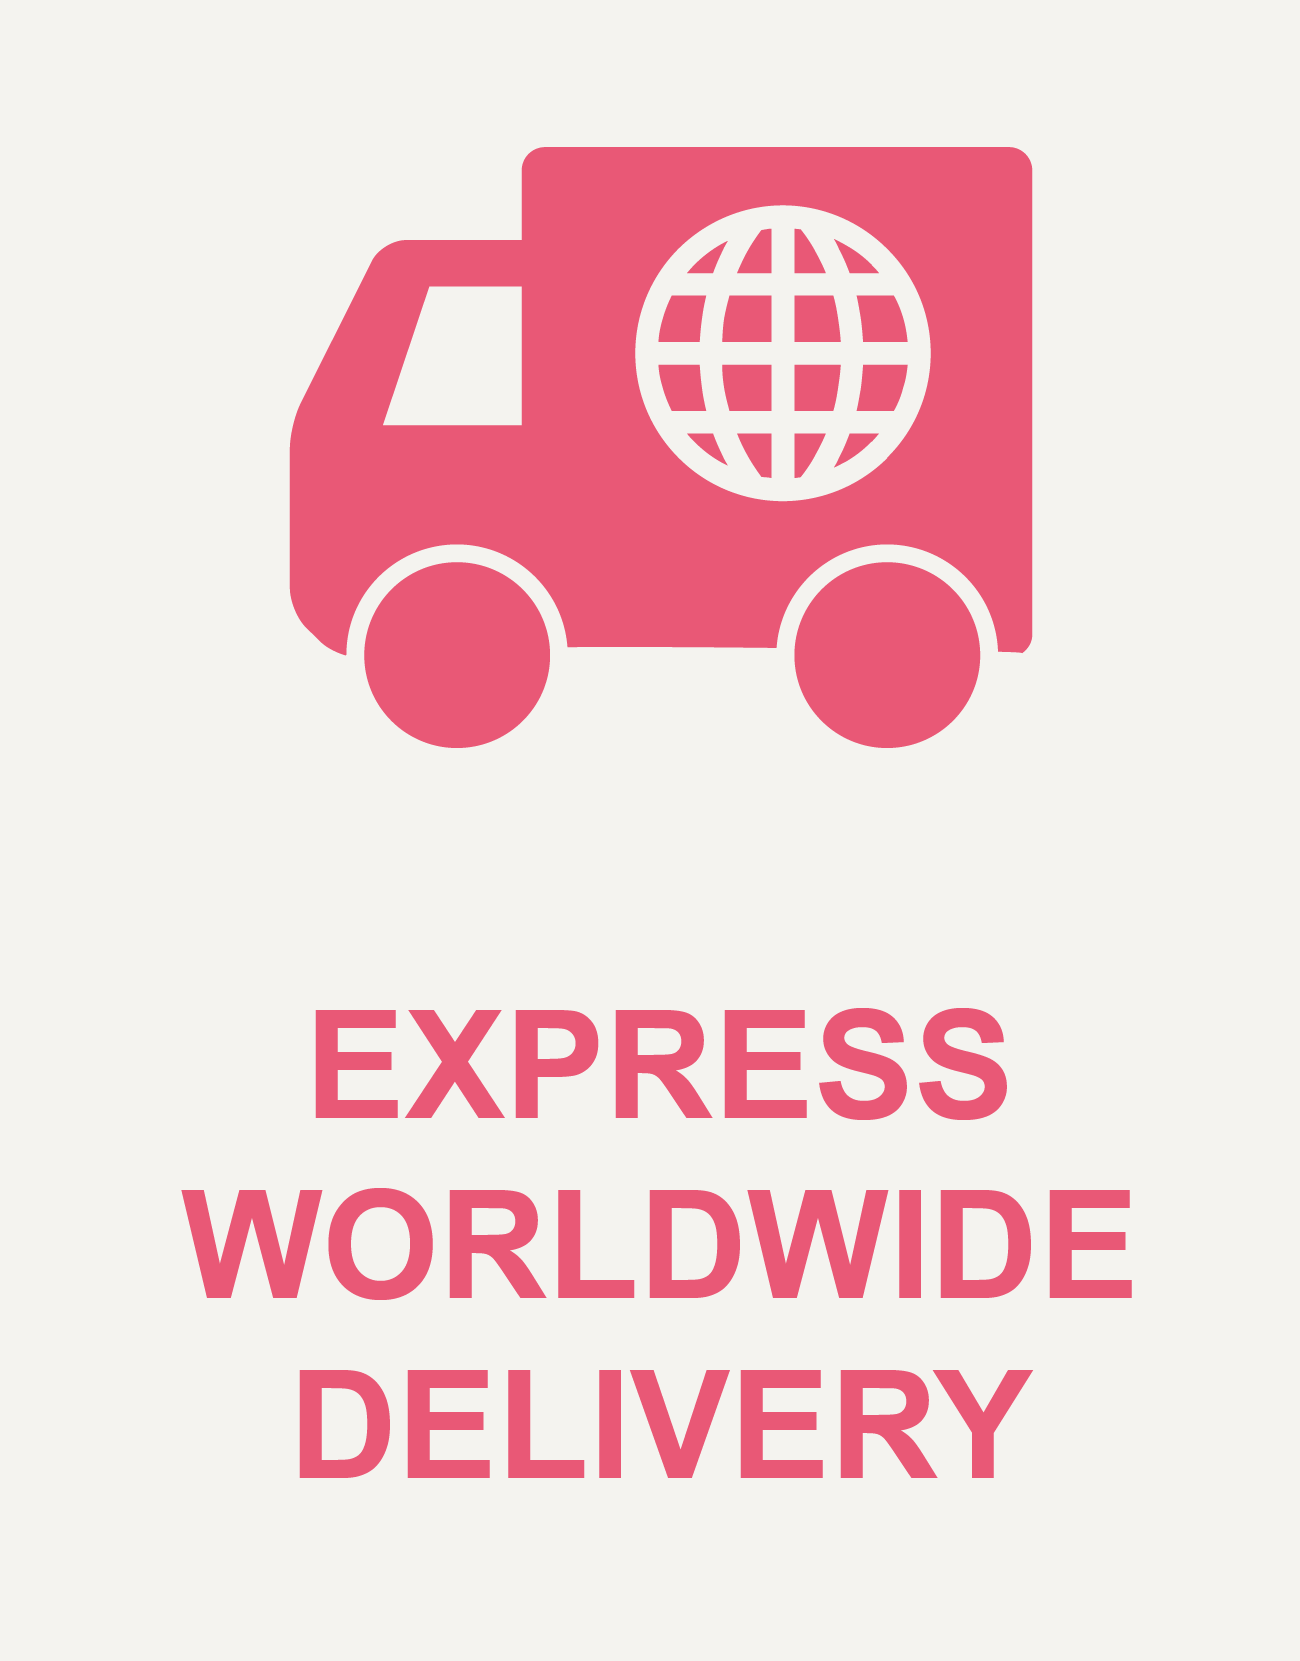 EXPRESS WORLDWIDE DELIVERY